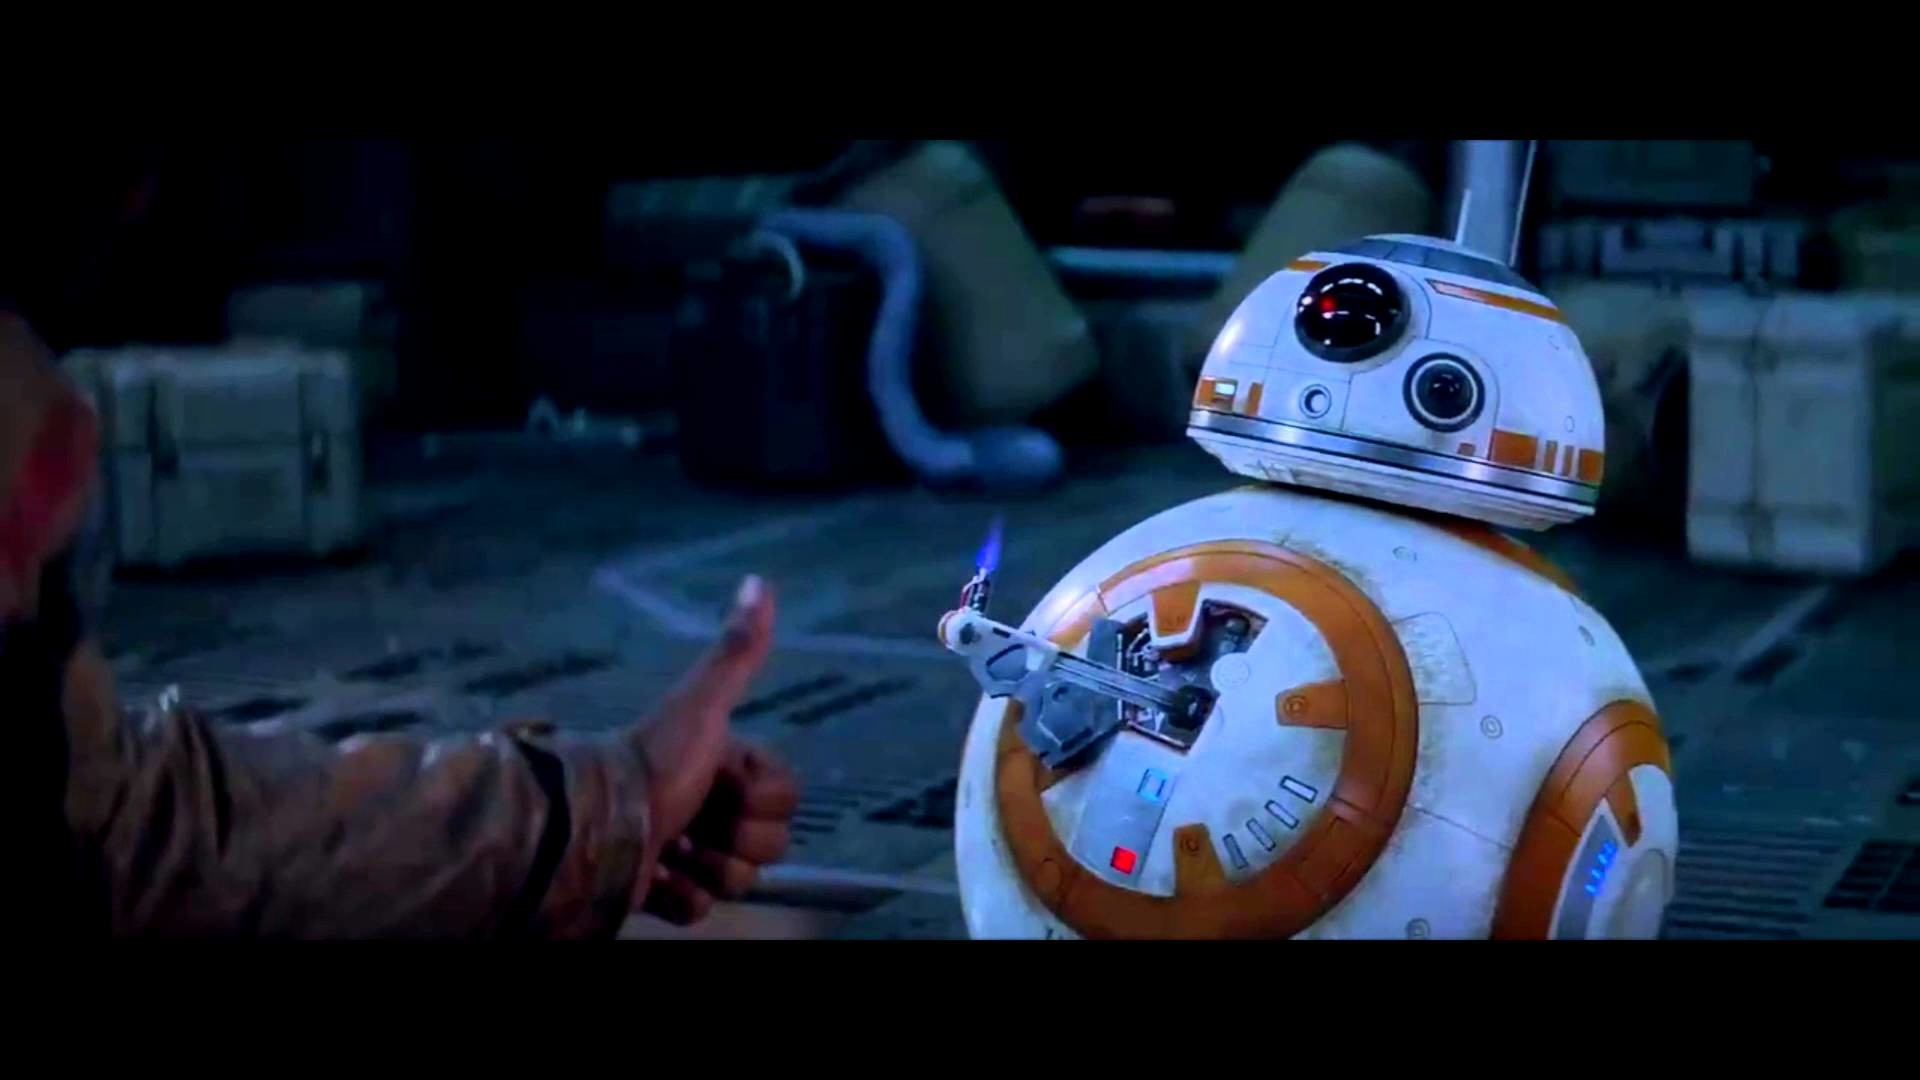 BB-8 Thumbs Up With Finn Scene [HD] (1080p) From Star Wars The Force Awakens